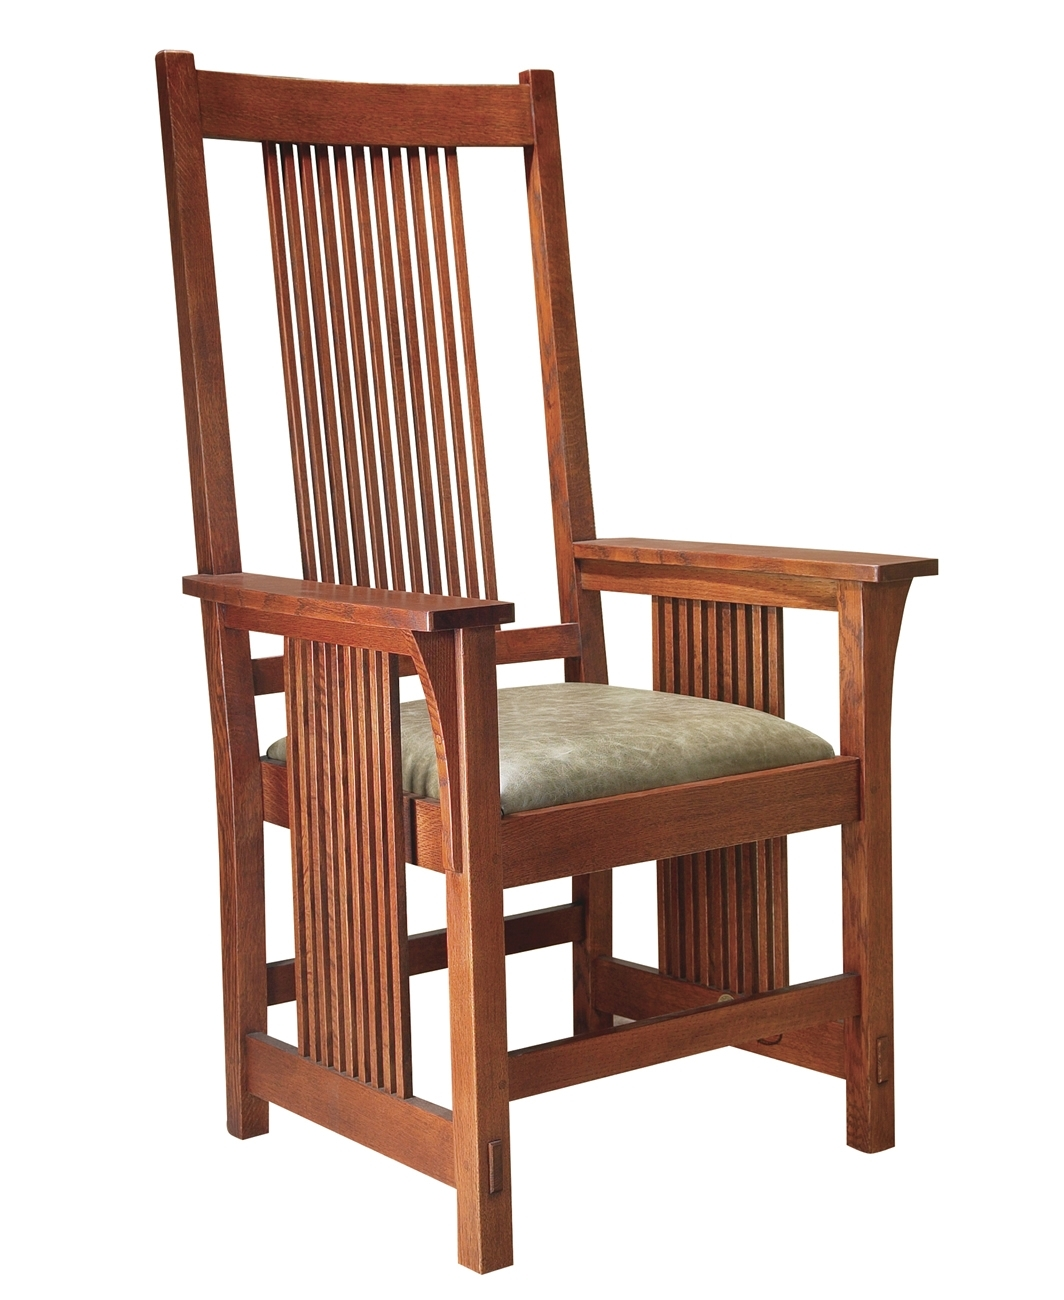 Inspiration about Well Known Candice Ii Slat Back Host Chairs Pertaining To Product List (#16 of 20)